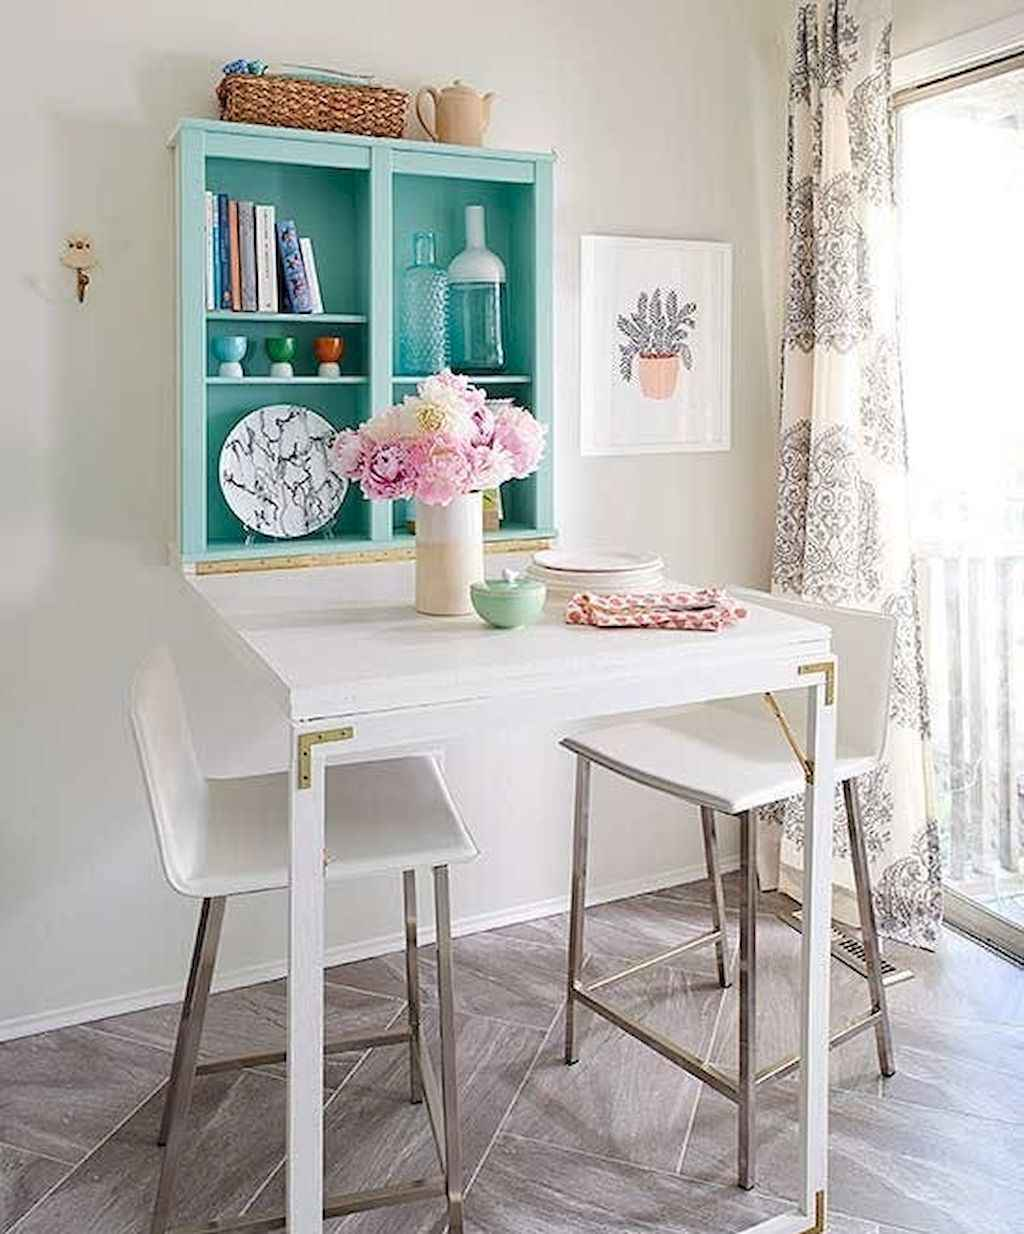 Small dining room table and chair ideas on a budget (45)